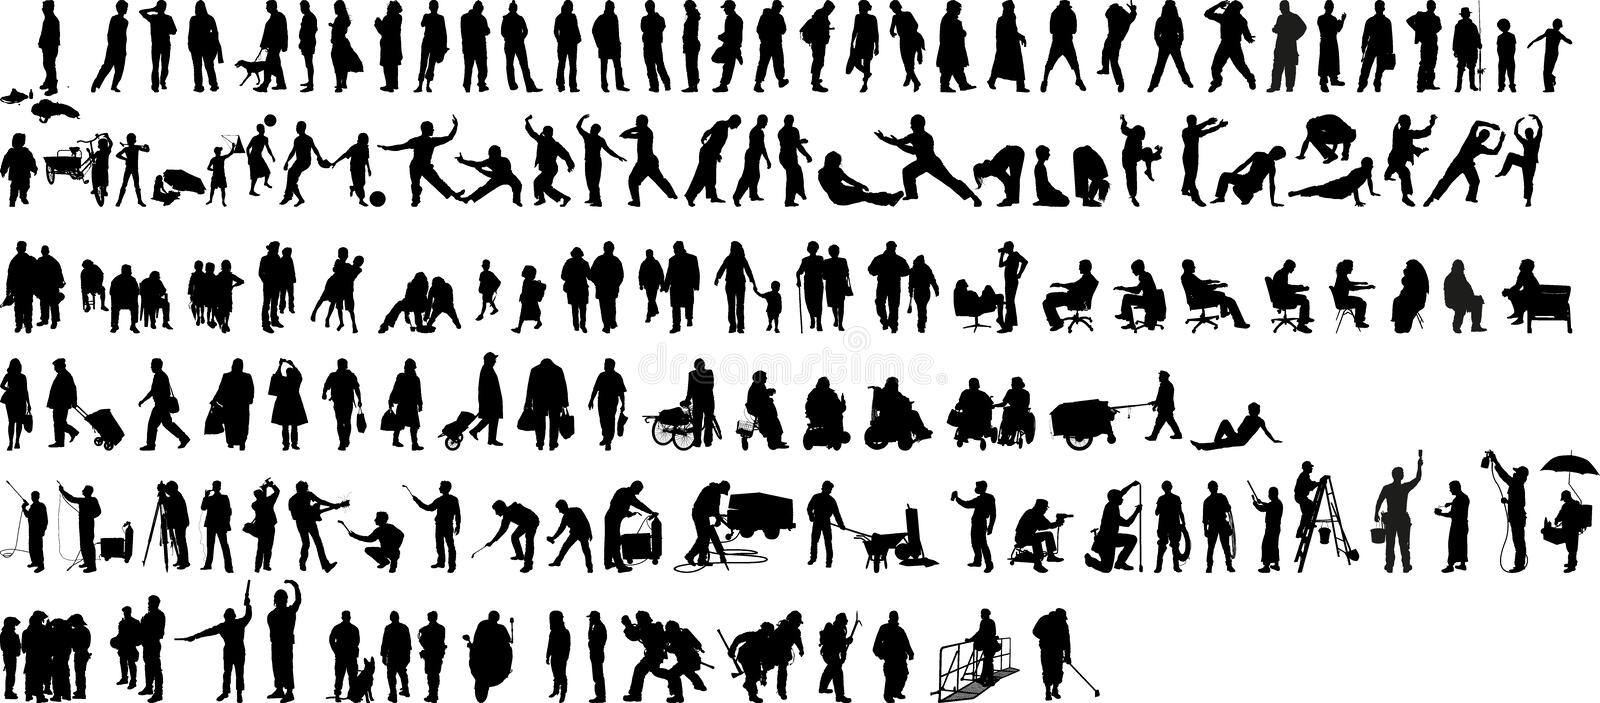 People silhouette 1 (+ ) royalty free illustration